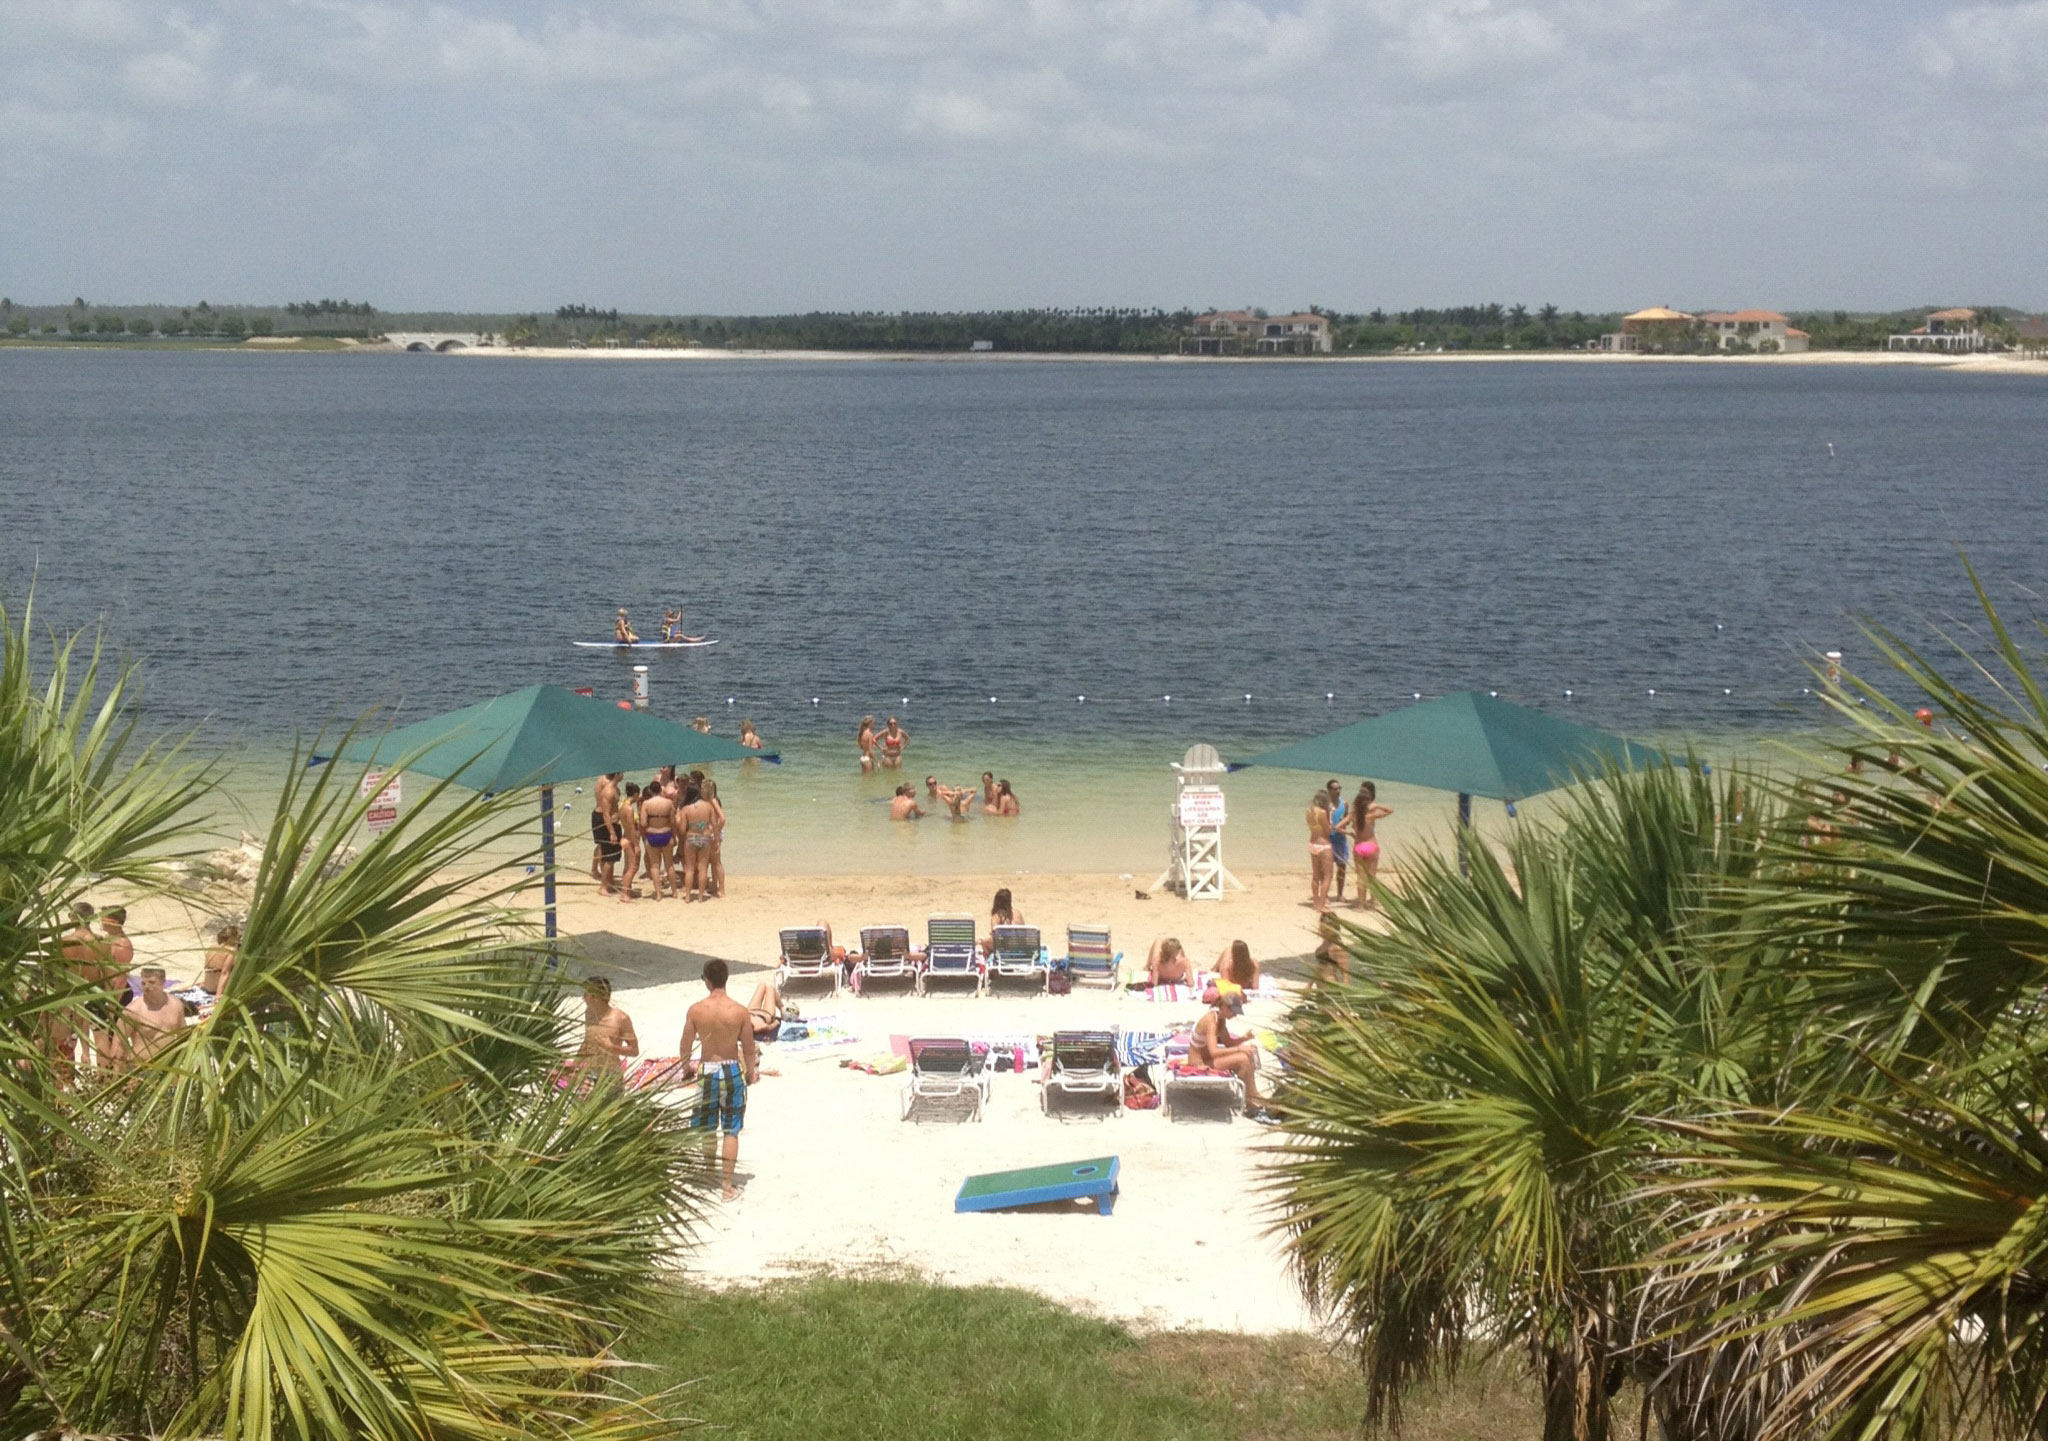 Chase Fieler's dorm room looks onto a beach at Florida Gulf Coast University. (Courtesy of Chase Fieler)